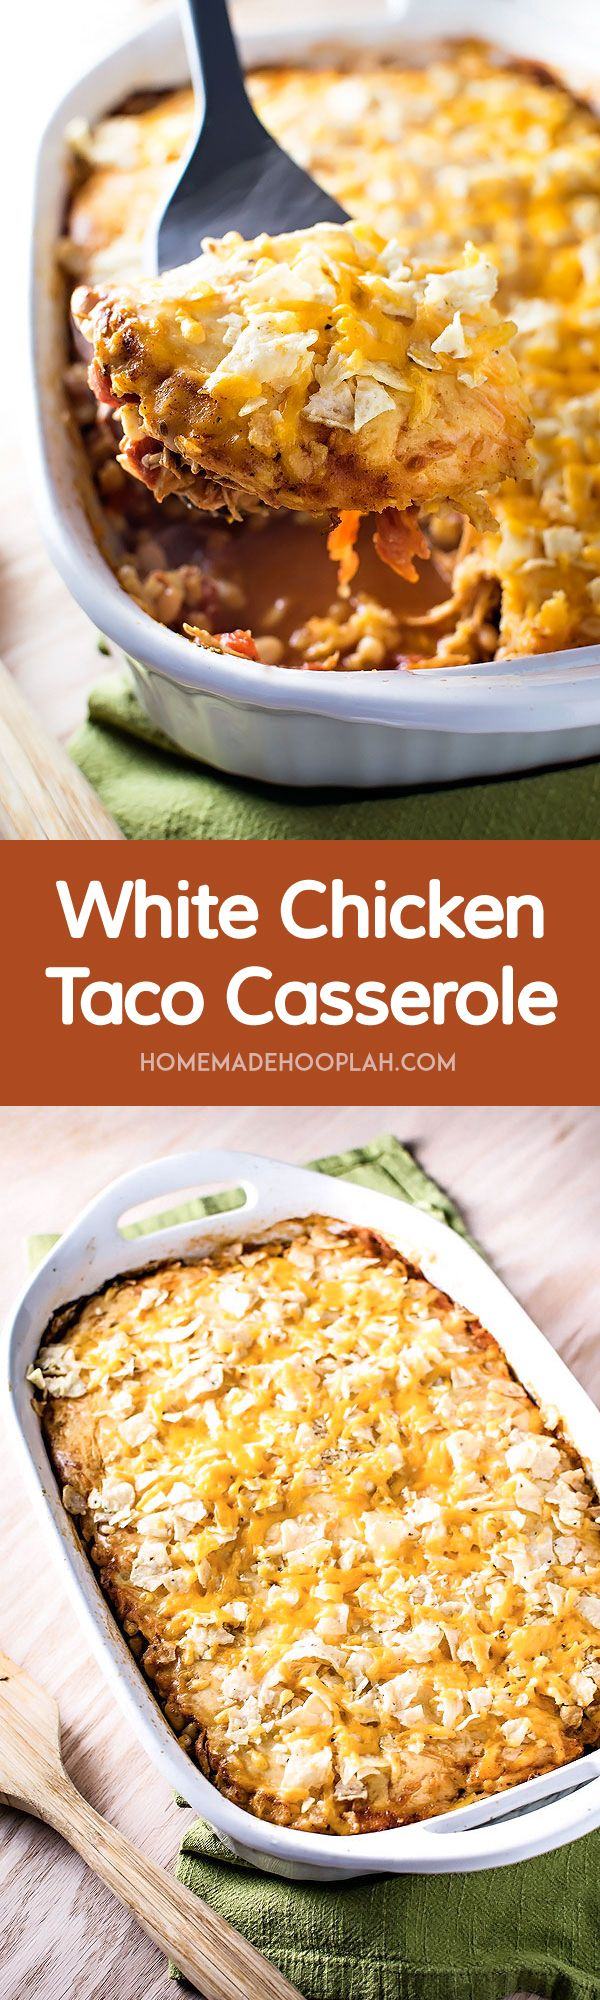 White Chicken Taco Casserole! All the deliciousness of chicken tacos, but made the easy way - assembled in 15 minutes and baked in a dish. | HomemadeHooplah.com